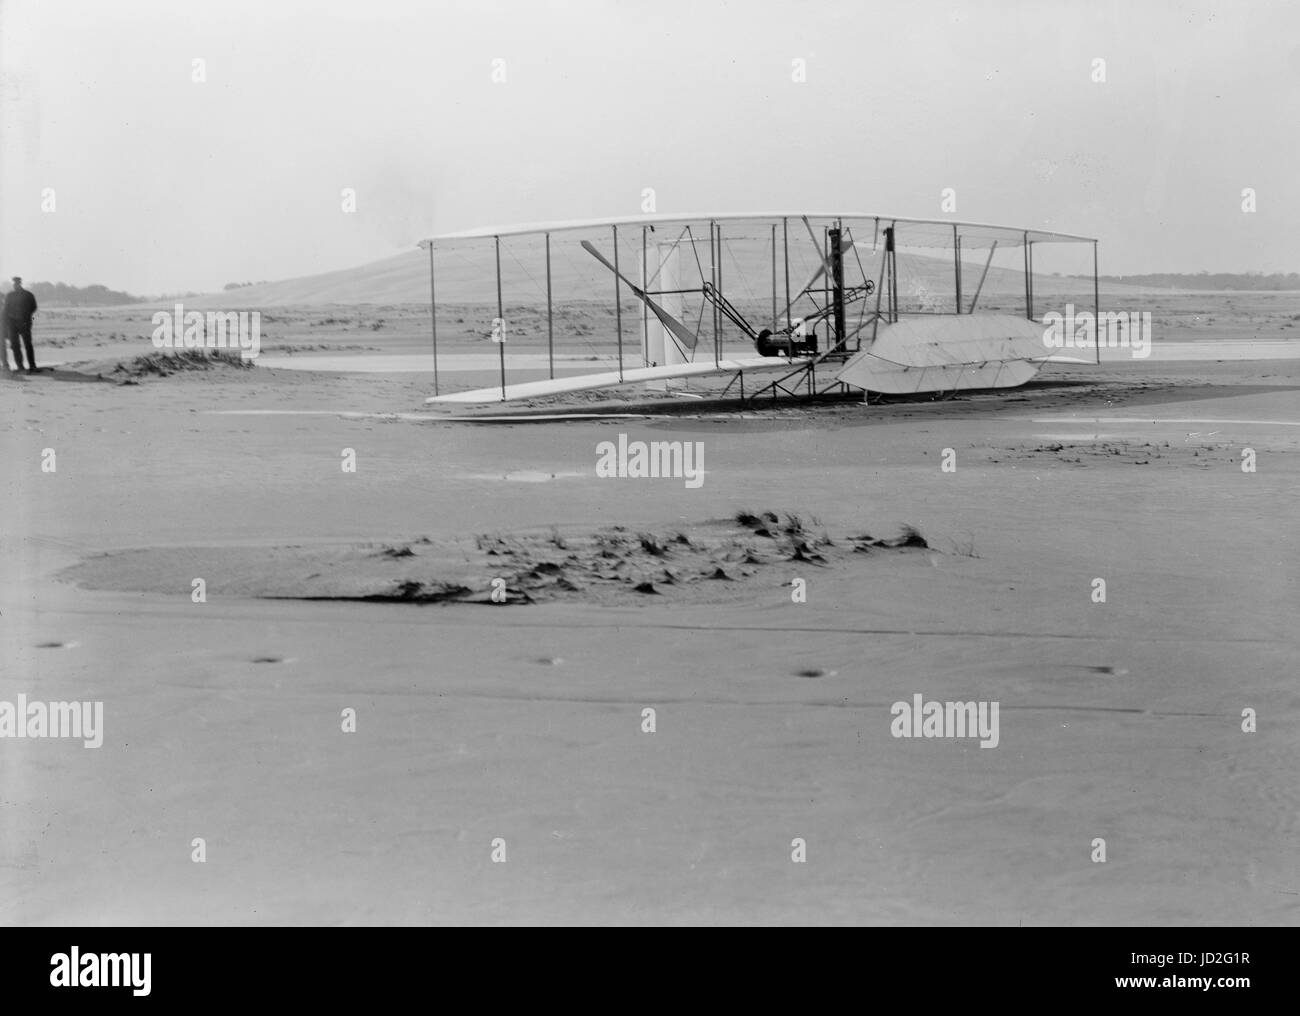 Close-up view of damaged 1903 machine, rudder frame broken in landing, on ground at end of last flight. - Stock Image